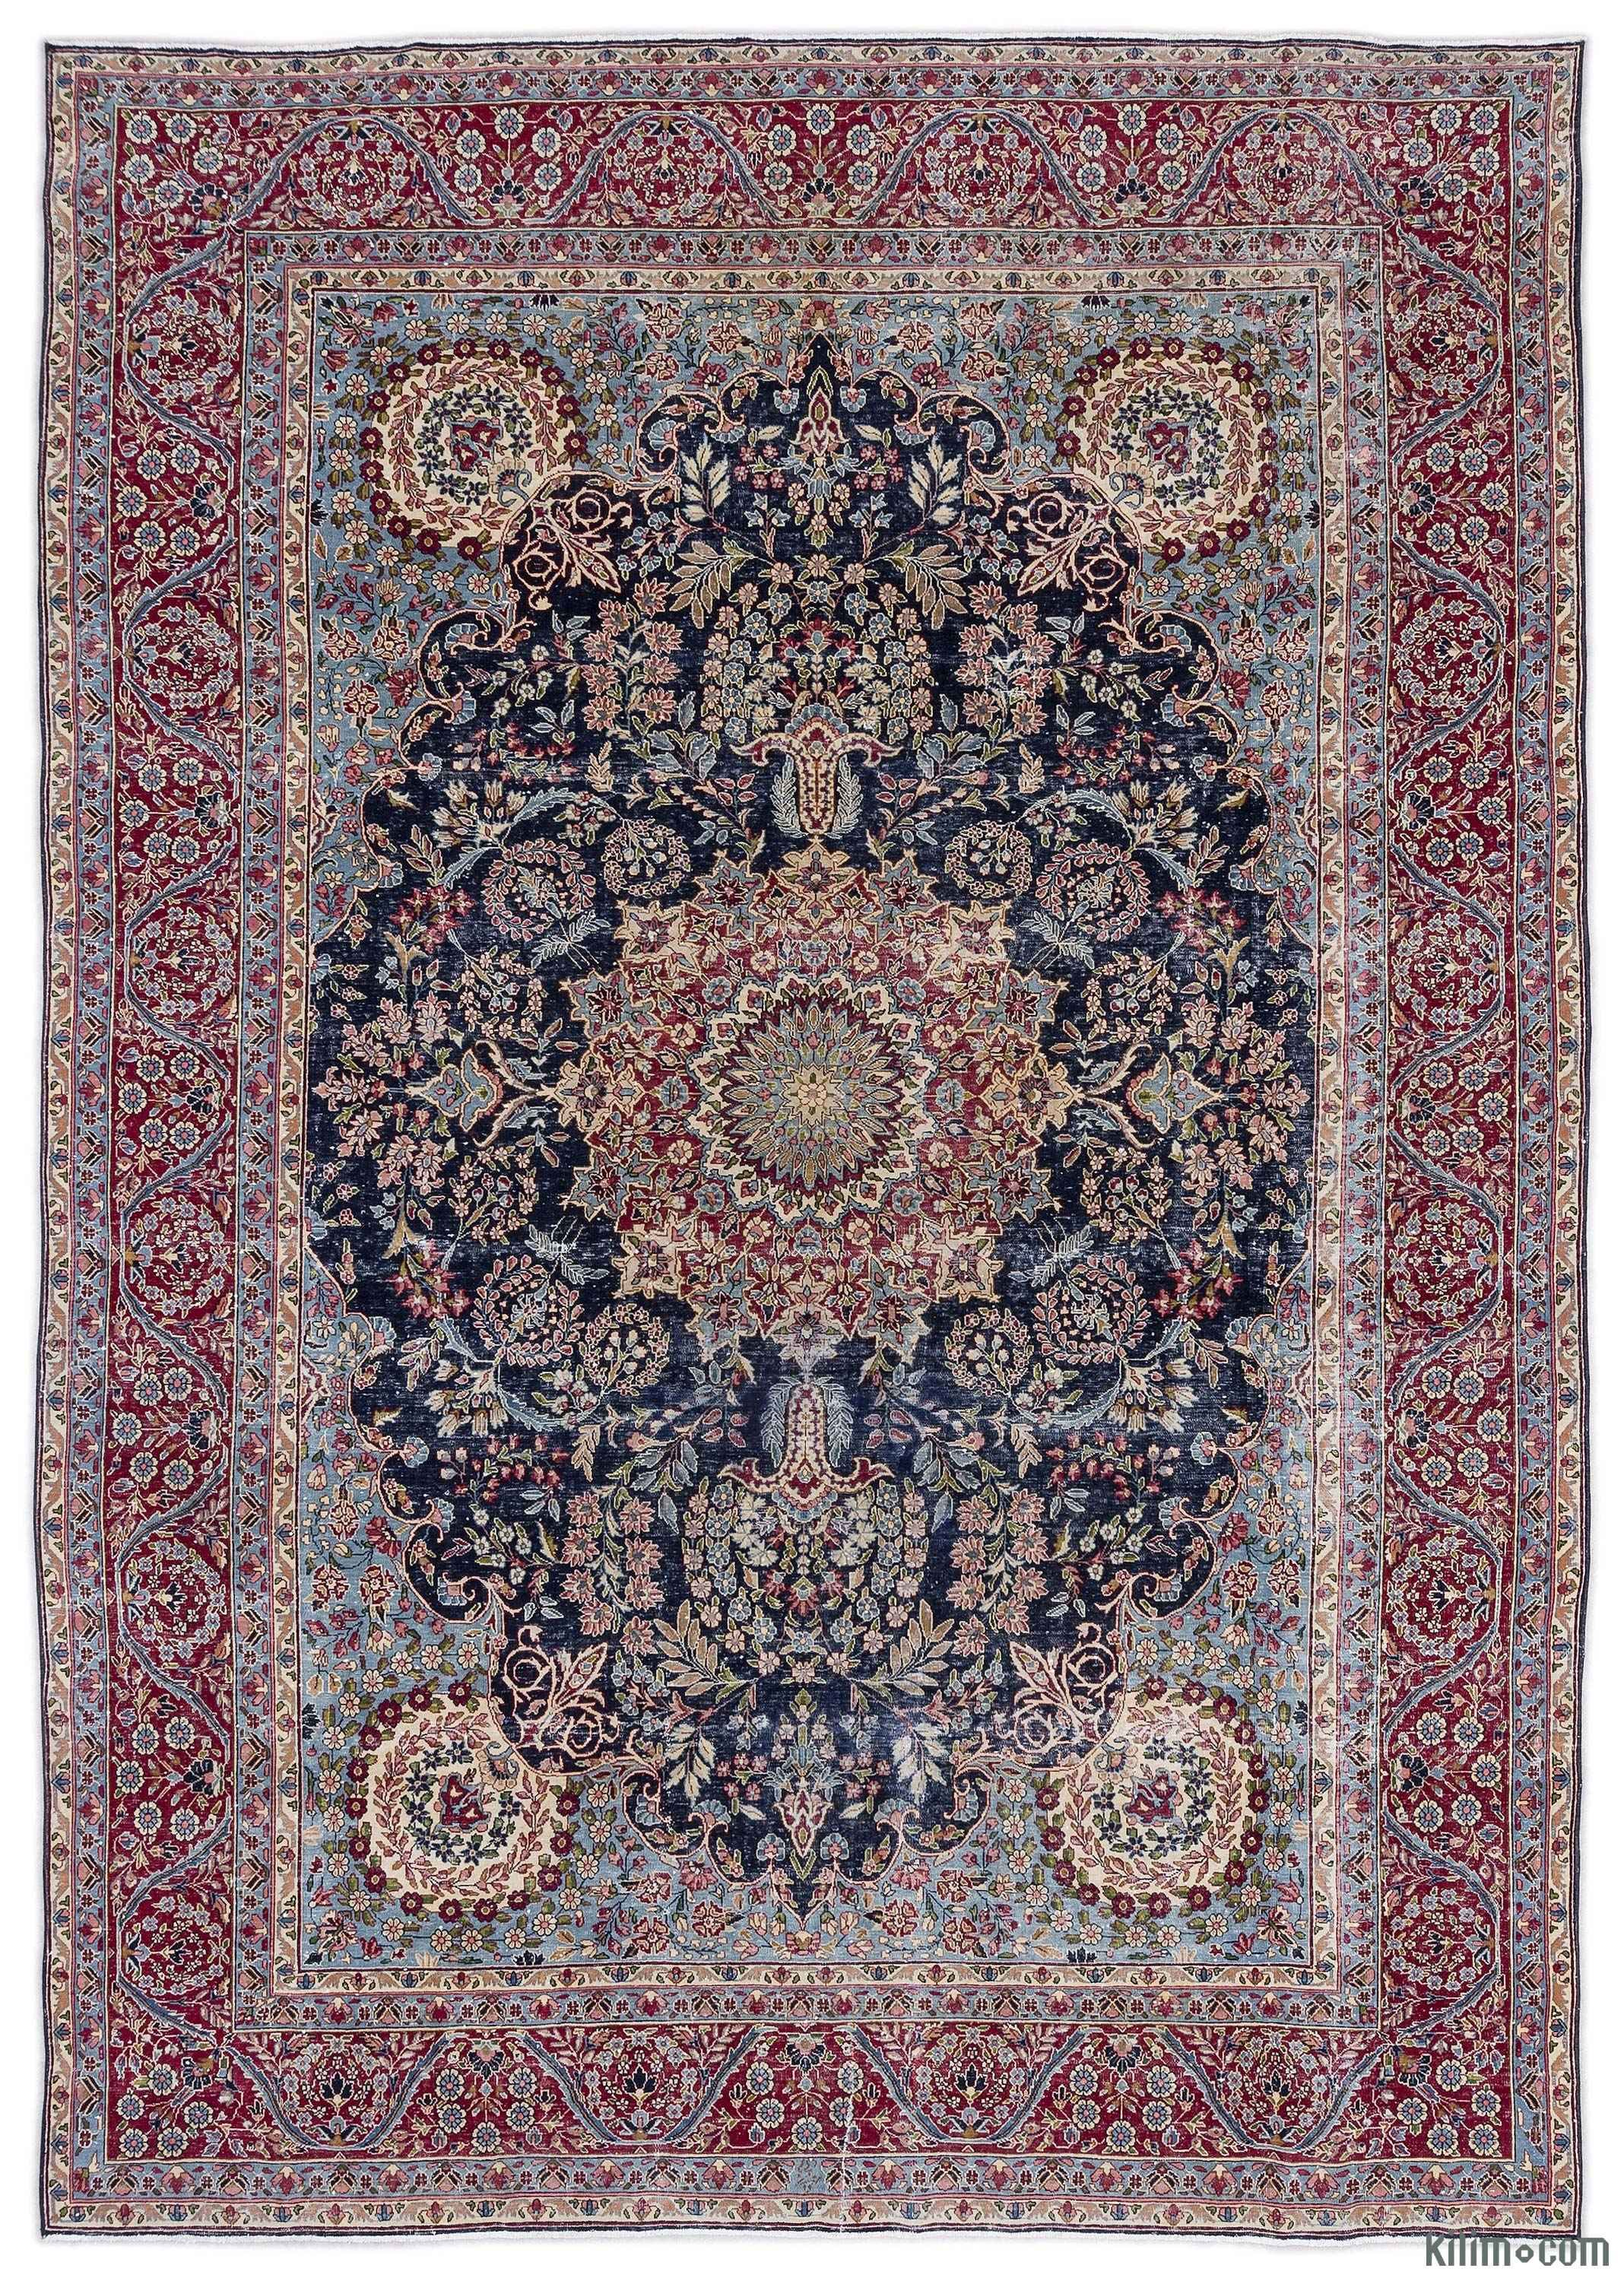 For A Contemporary Look With A Vintage Appeal We Source Persian Rugs In Excellent Condition And Carefully Trim The Piles Vintage Persian Rug Vintage Rugs Rugs